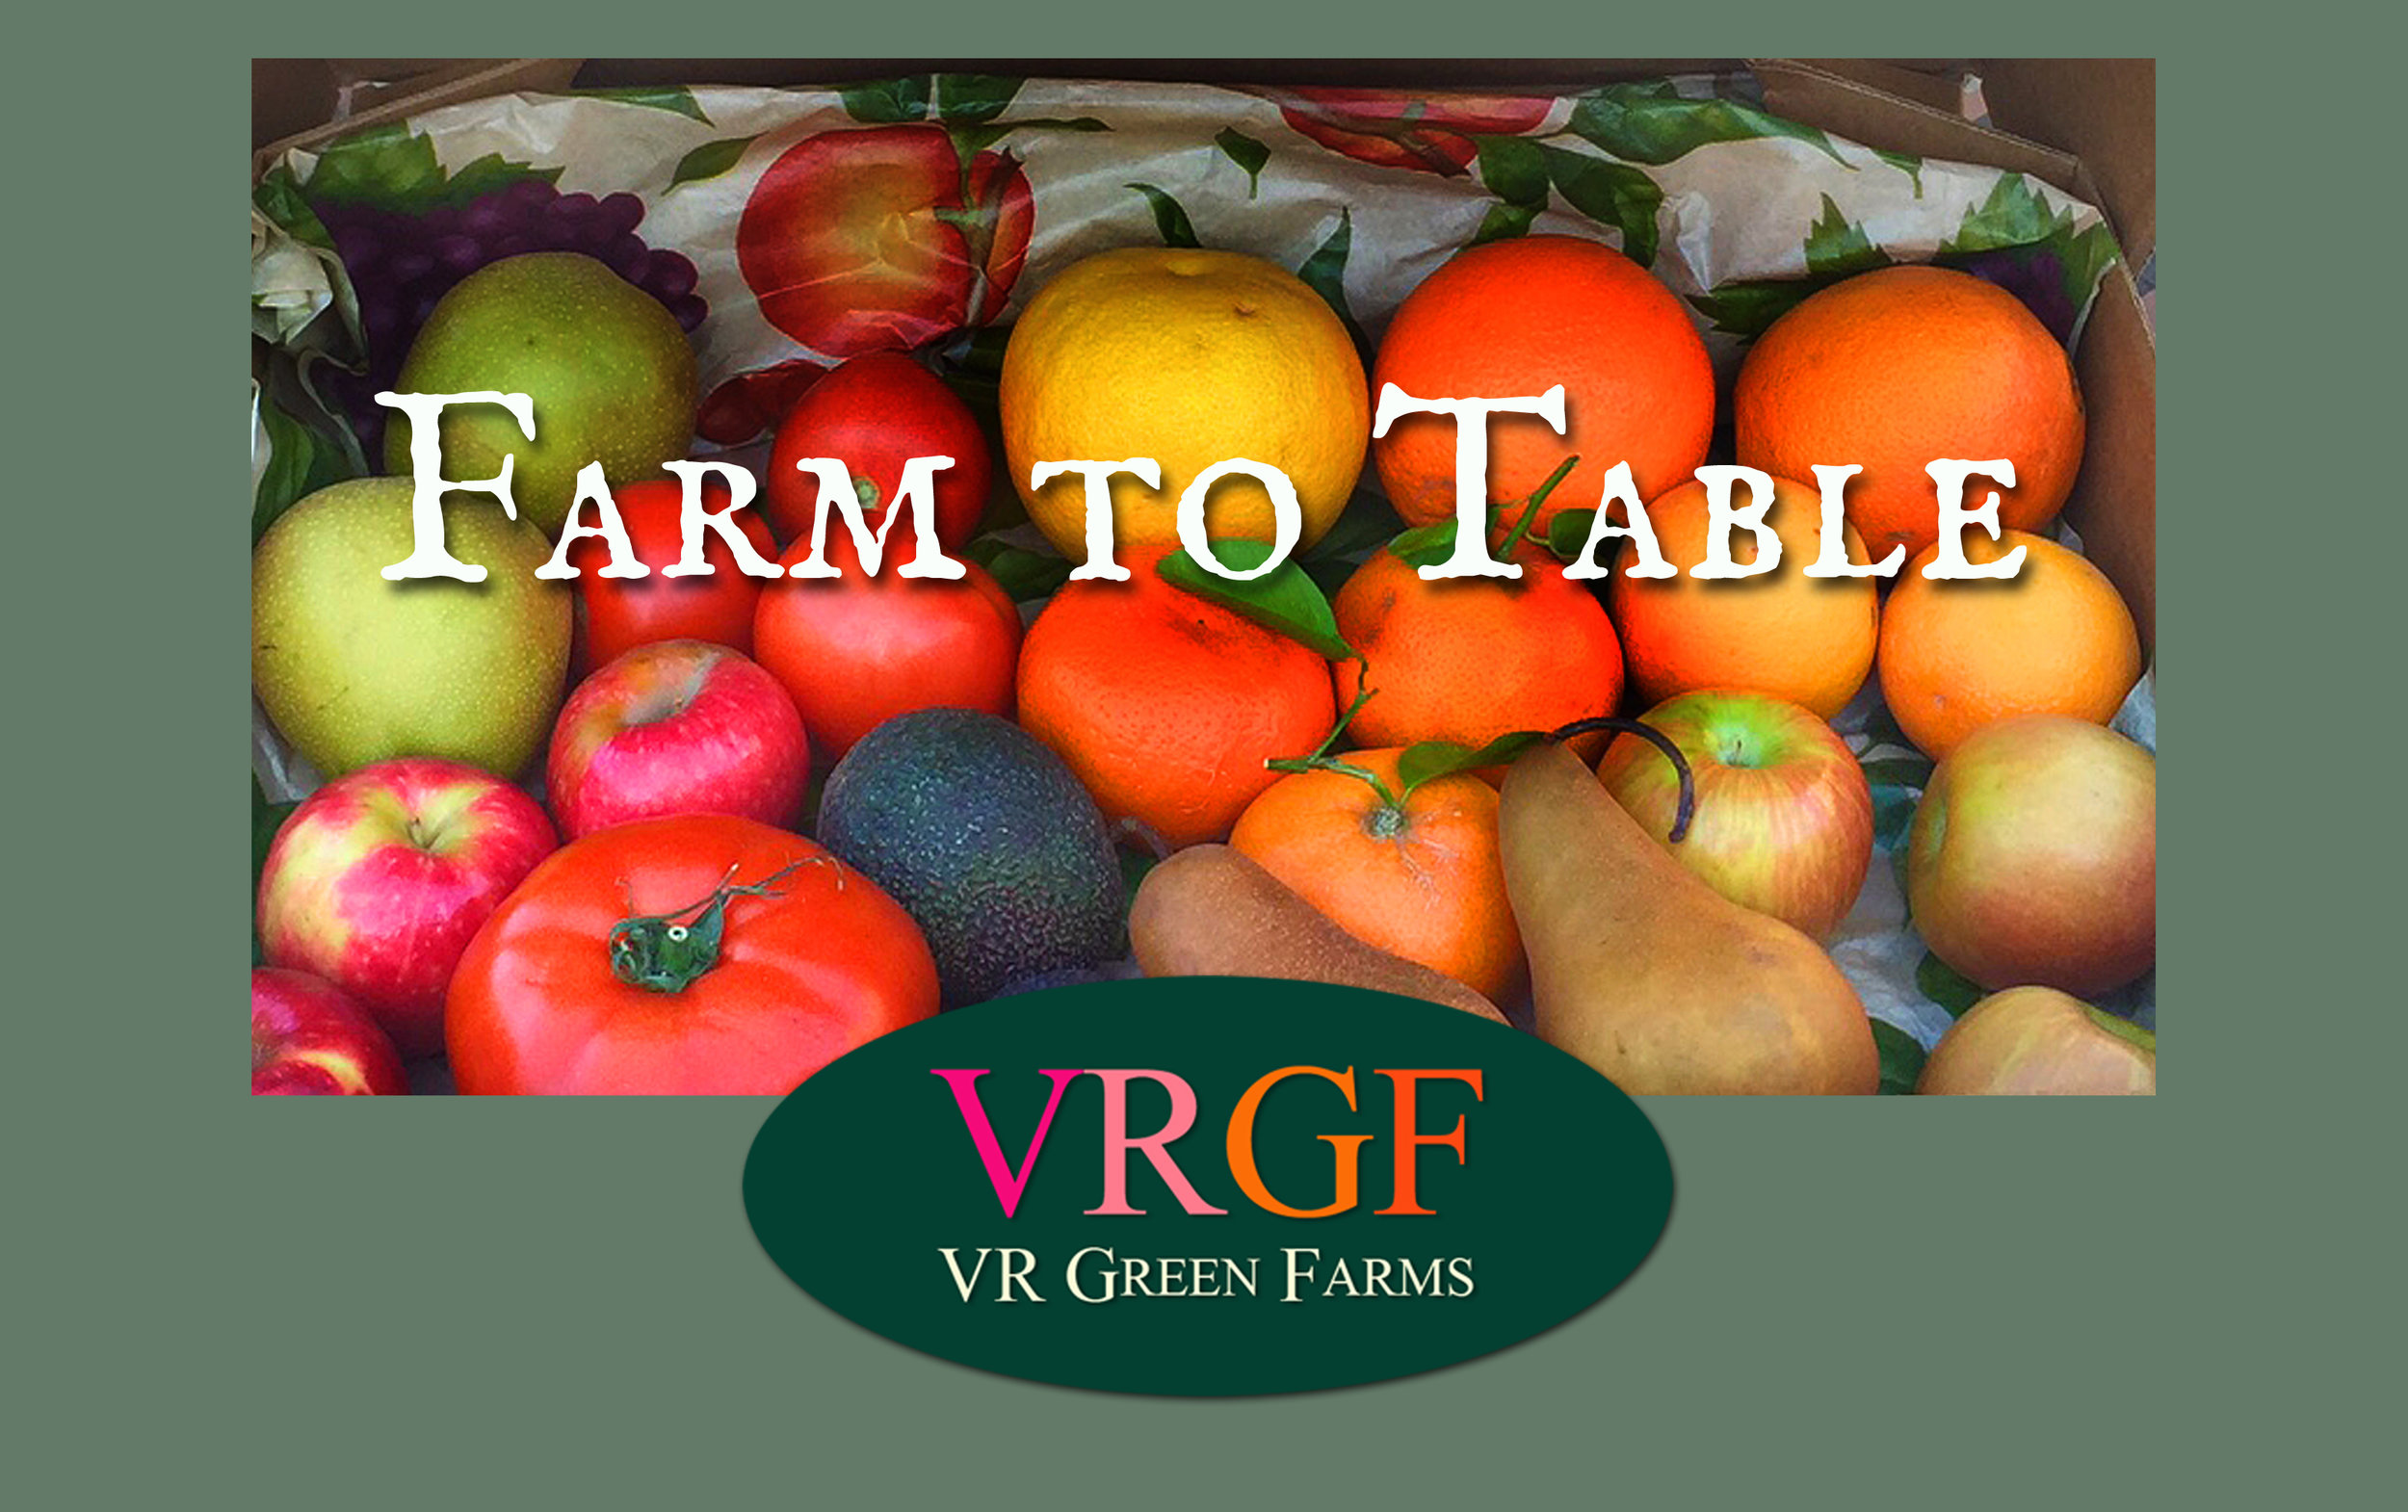 "VR Green Farms - San ClementeFresh Italian vegetables. That's the story and they're sticking to it. ""First we drew a line in the dirt and said 'let's plant here. And here. And here.' Then we brought in soil experts, water analysts, weather gurus and told them 'make it natural, no funny pellets, amend our soil in a good way.' Meanwhile we germinated over 30 heirloom vegetable seeds from Italy, transplanted them in the Old World tradition, and planted them with our Italian ancestors in mind."""